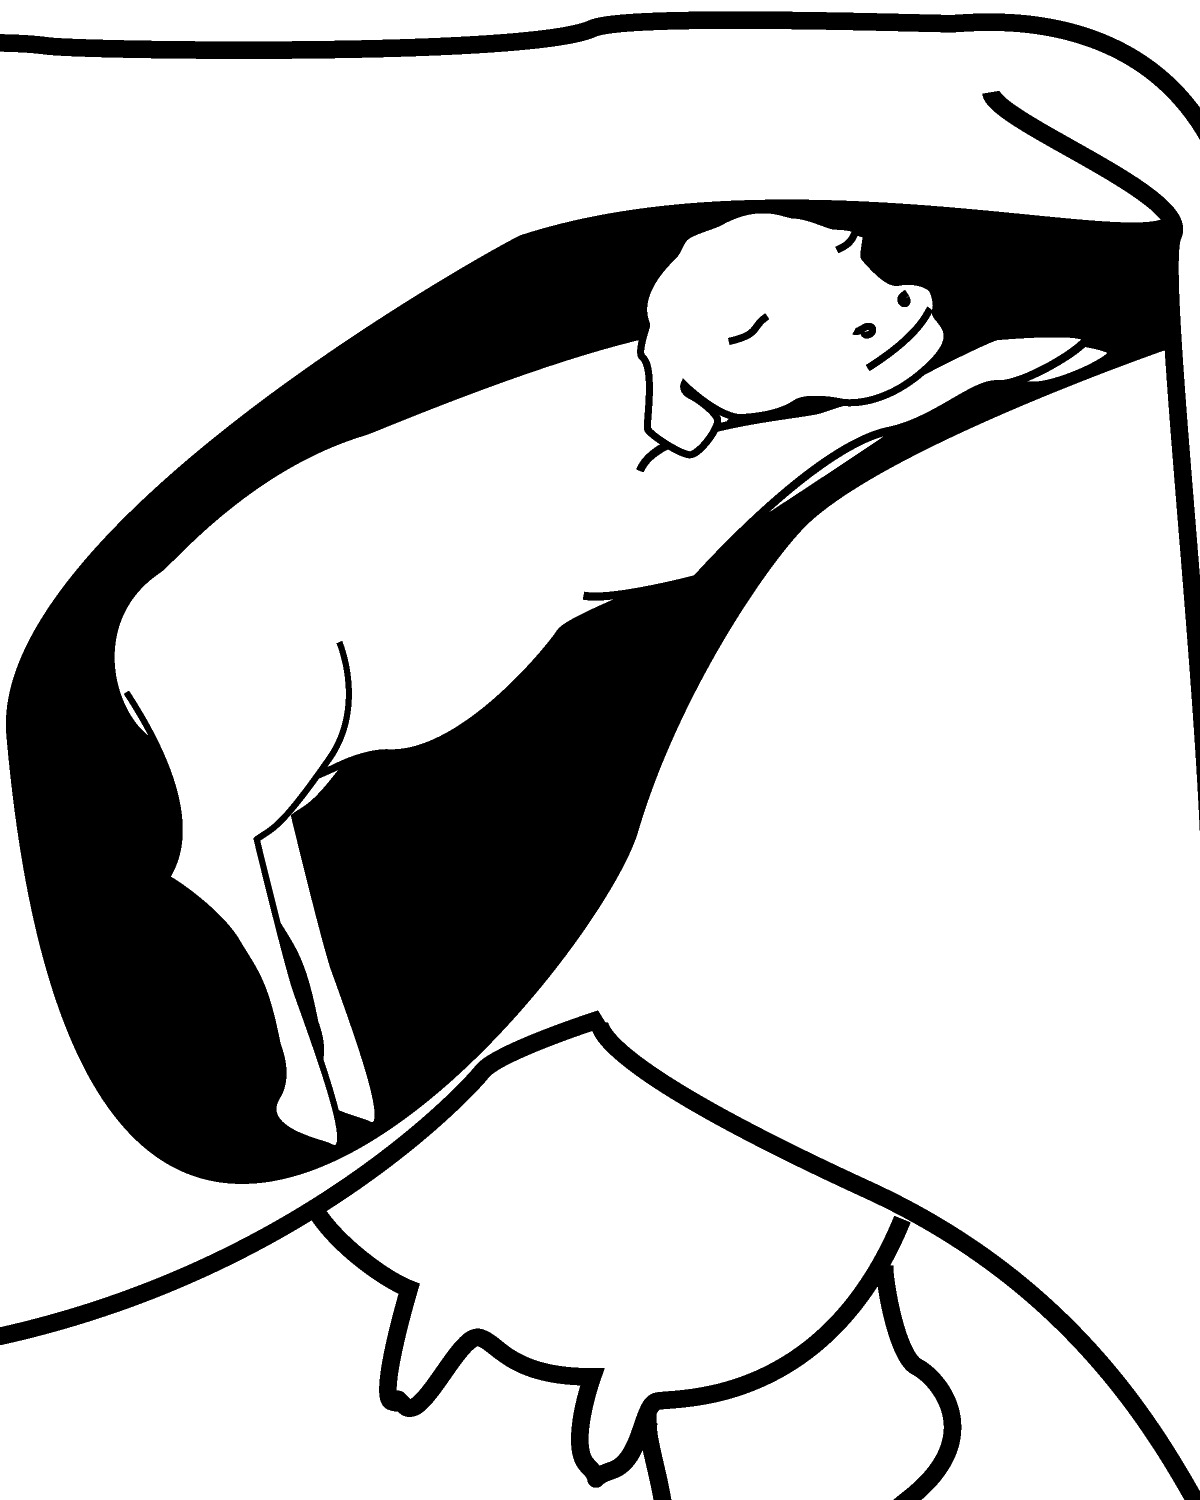 Black and white clipart cow with no legs graphic library E-1006 Calving Time Management for Beef Cows and Heifers » OSU Fact ... graphic library